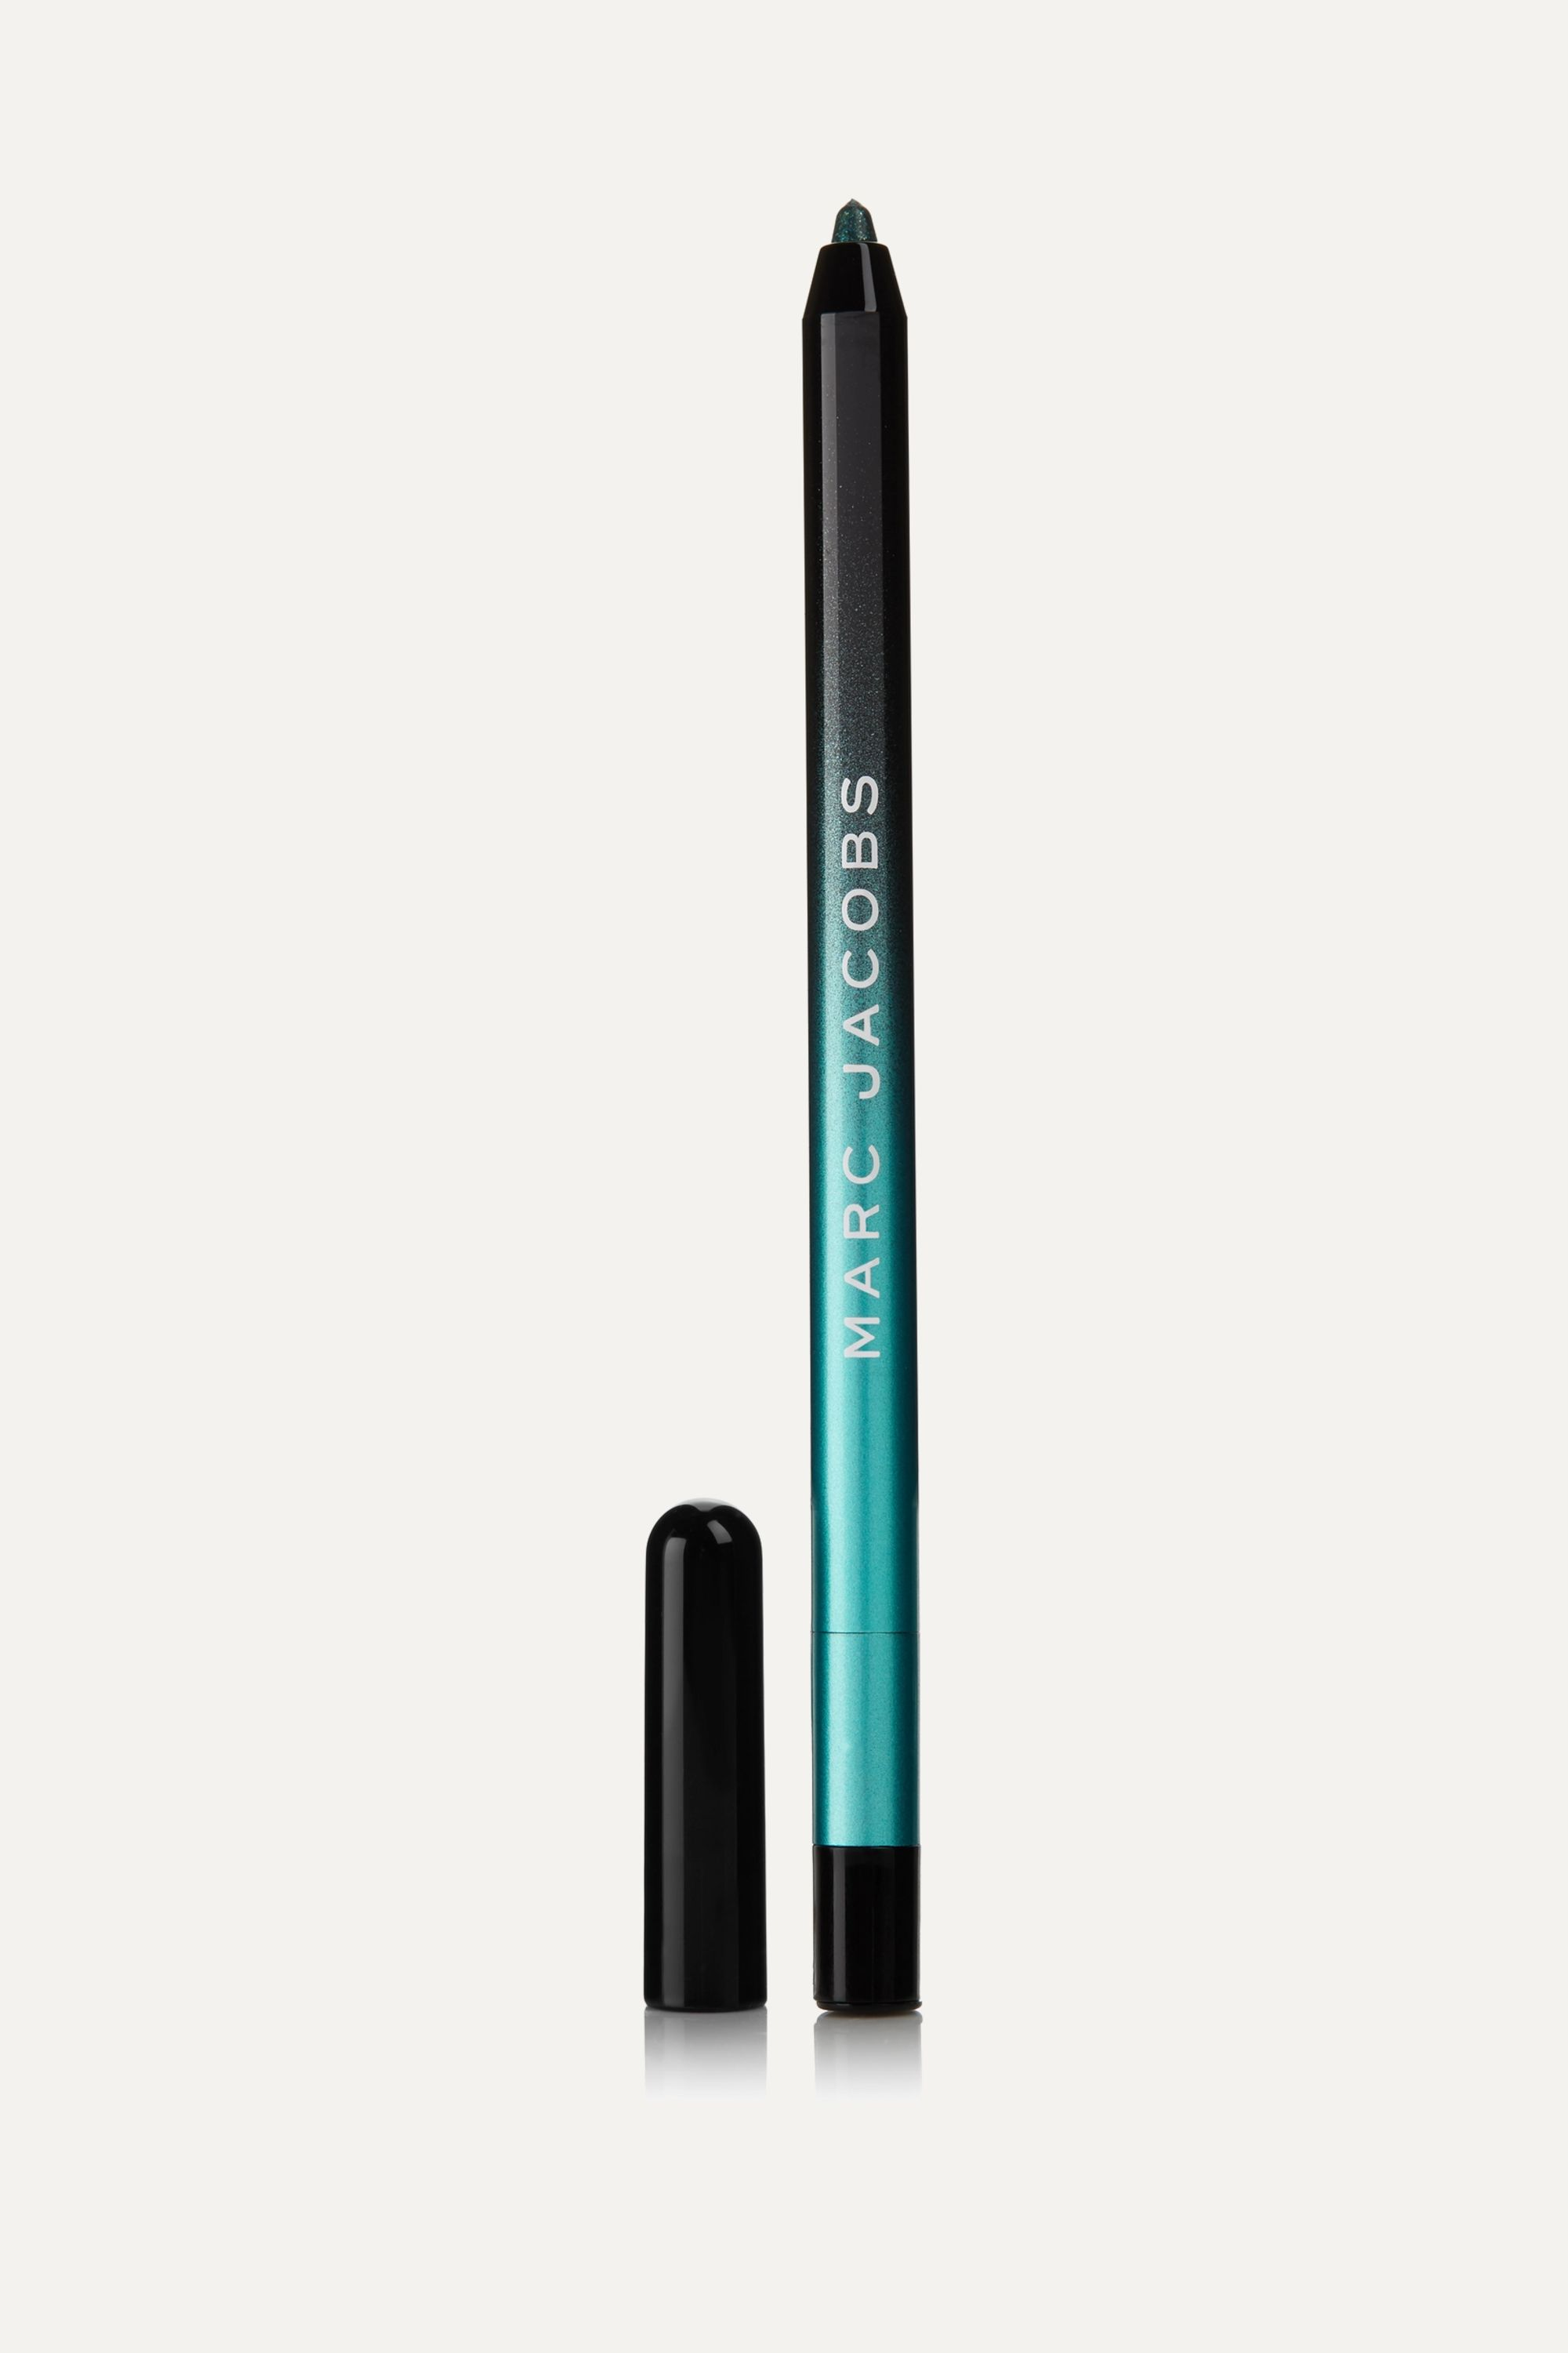 Marc Jacobs Beauty Highliner Glam Glitter Gel Eye Crayon - (Gem)Stoned 33